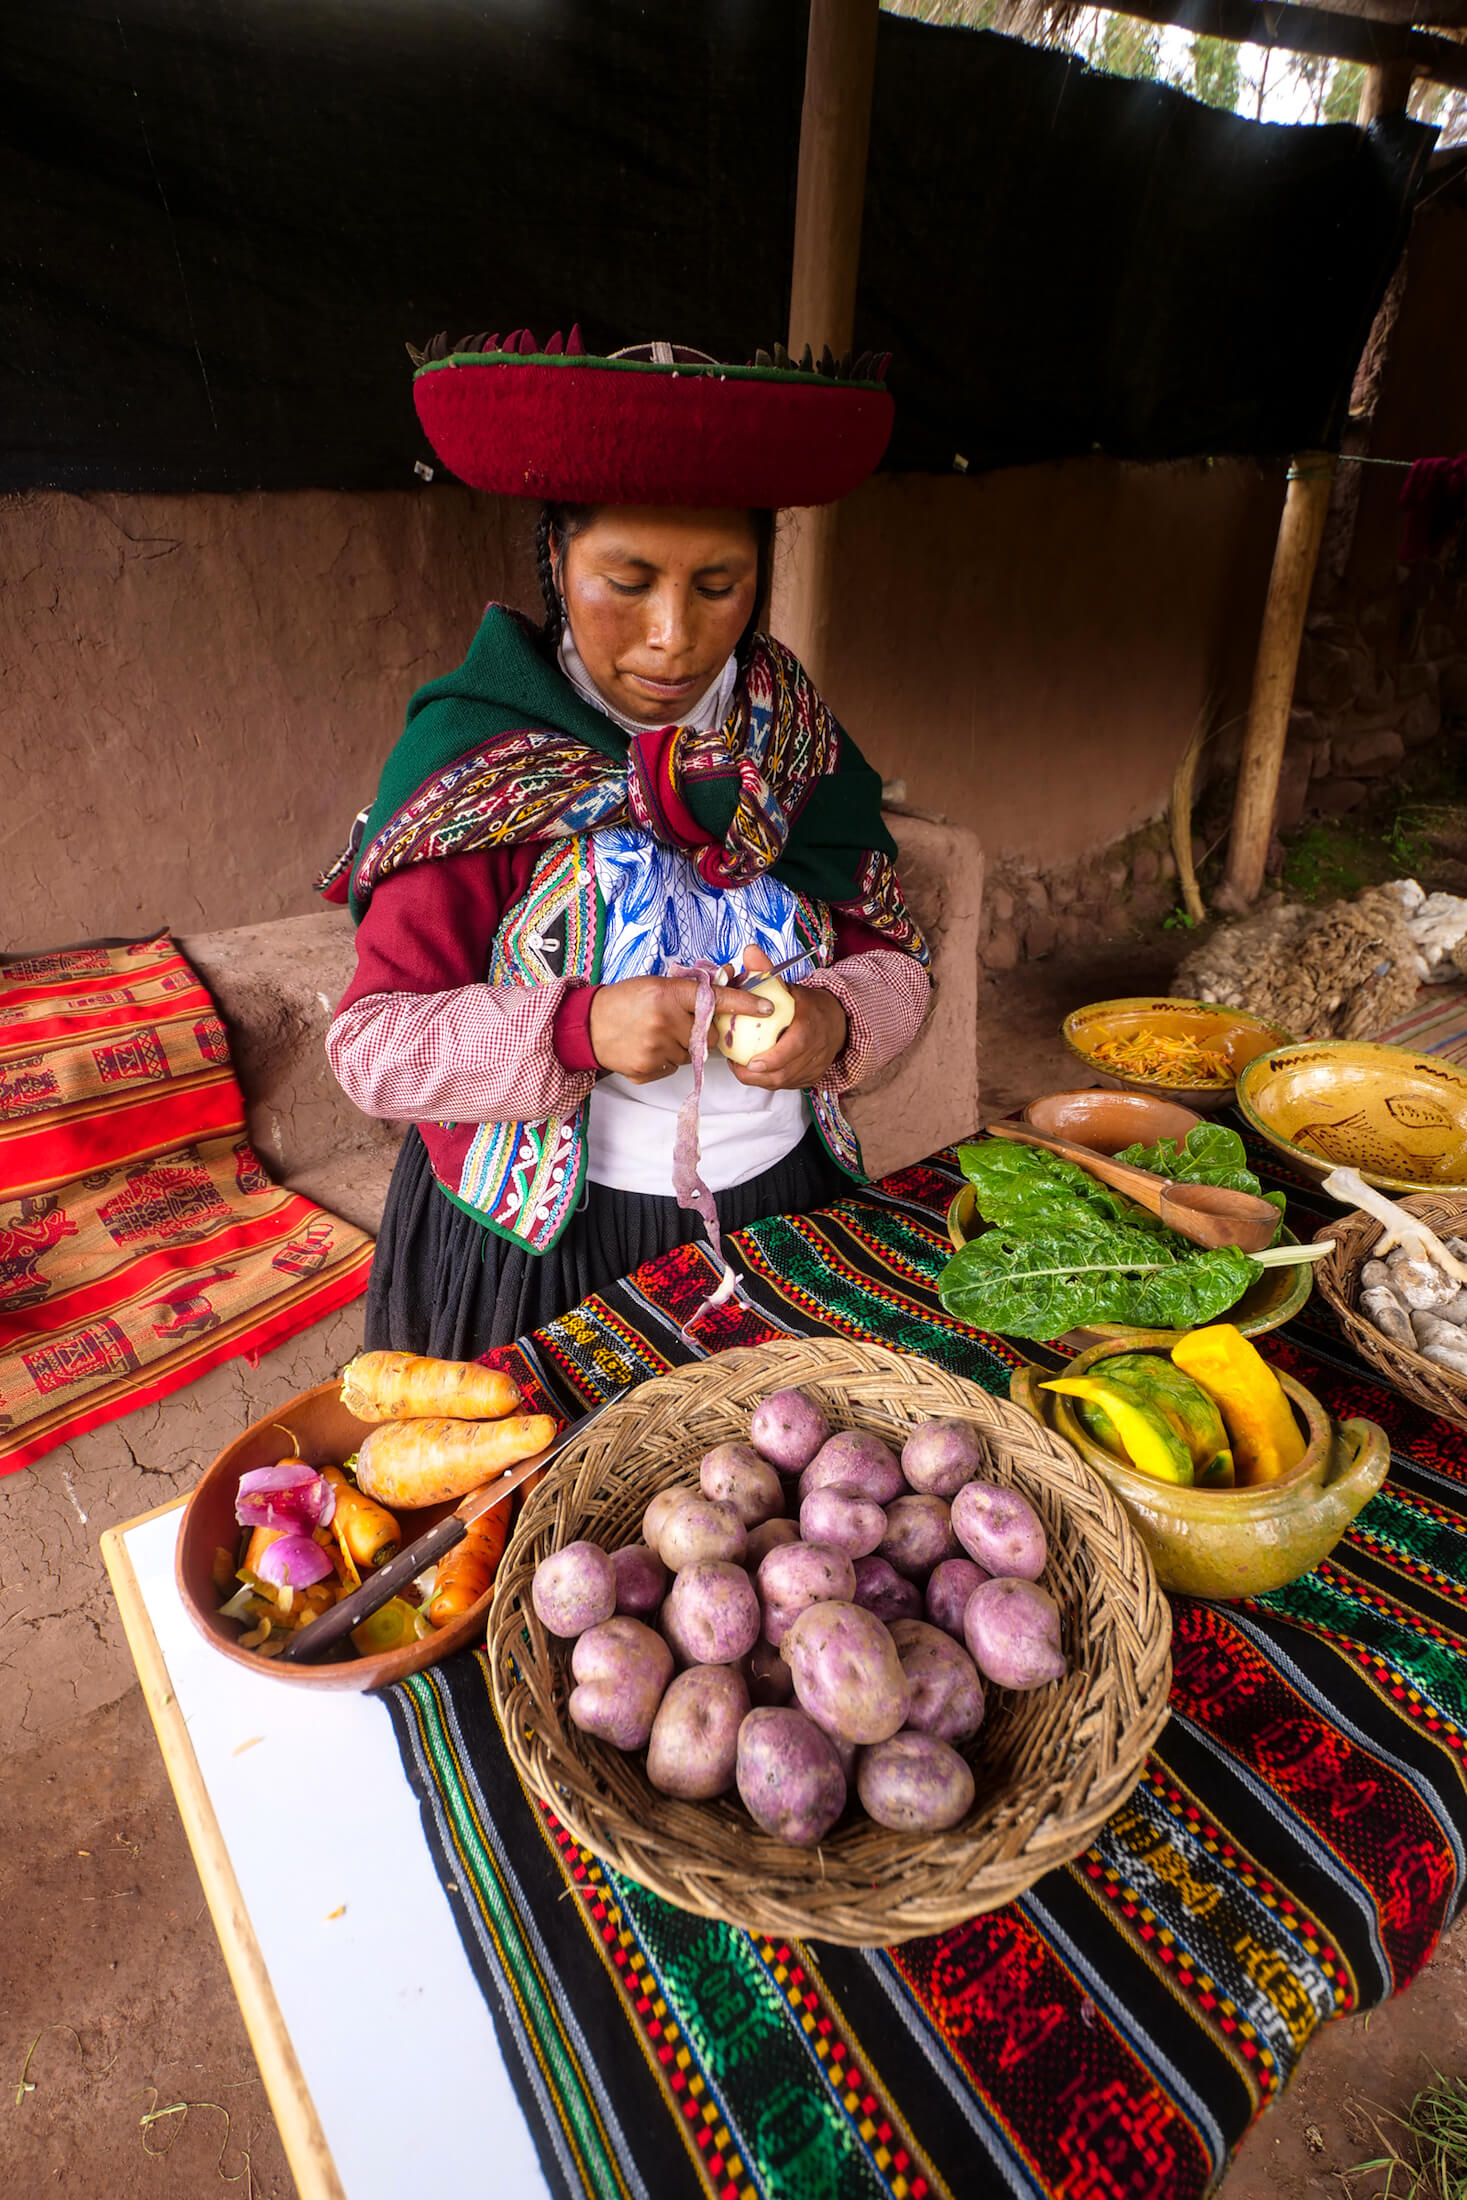 Ingredients to Moraya, a high-altitude staple food of Peru, include pumpkin, potato, carrot, and kale